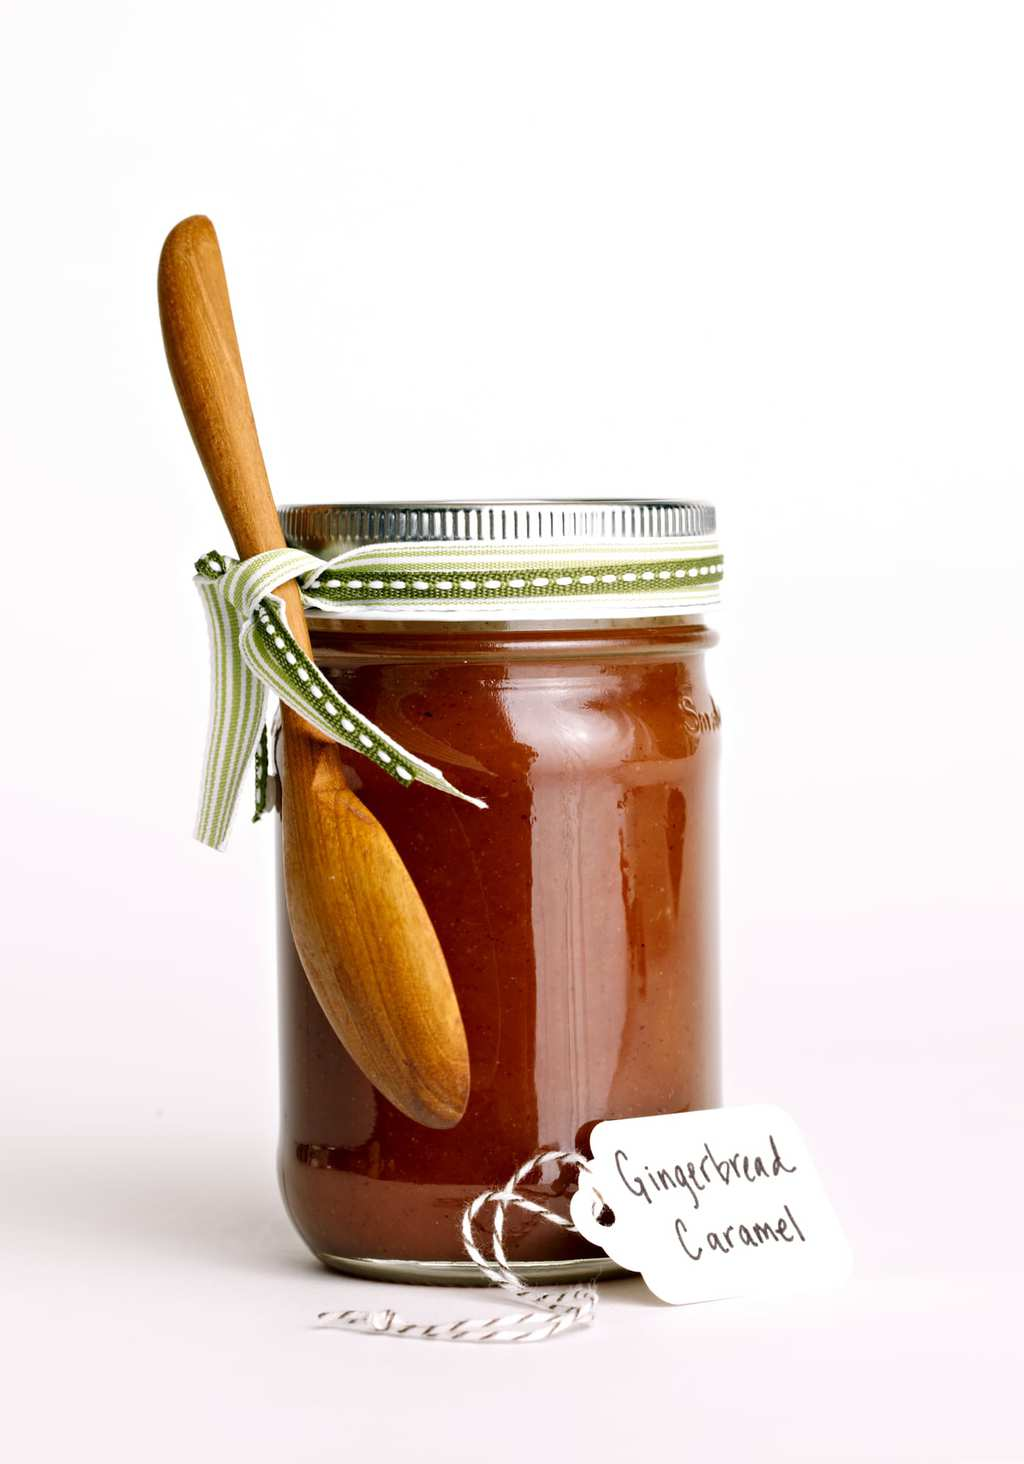 Gingerbread Caramel Sauce with a ribbon in a jar